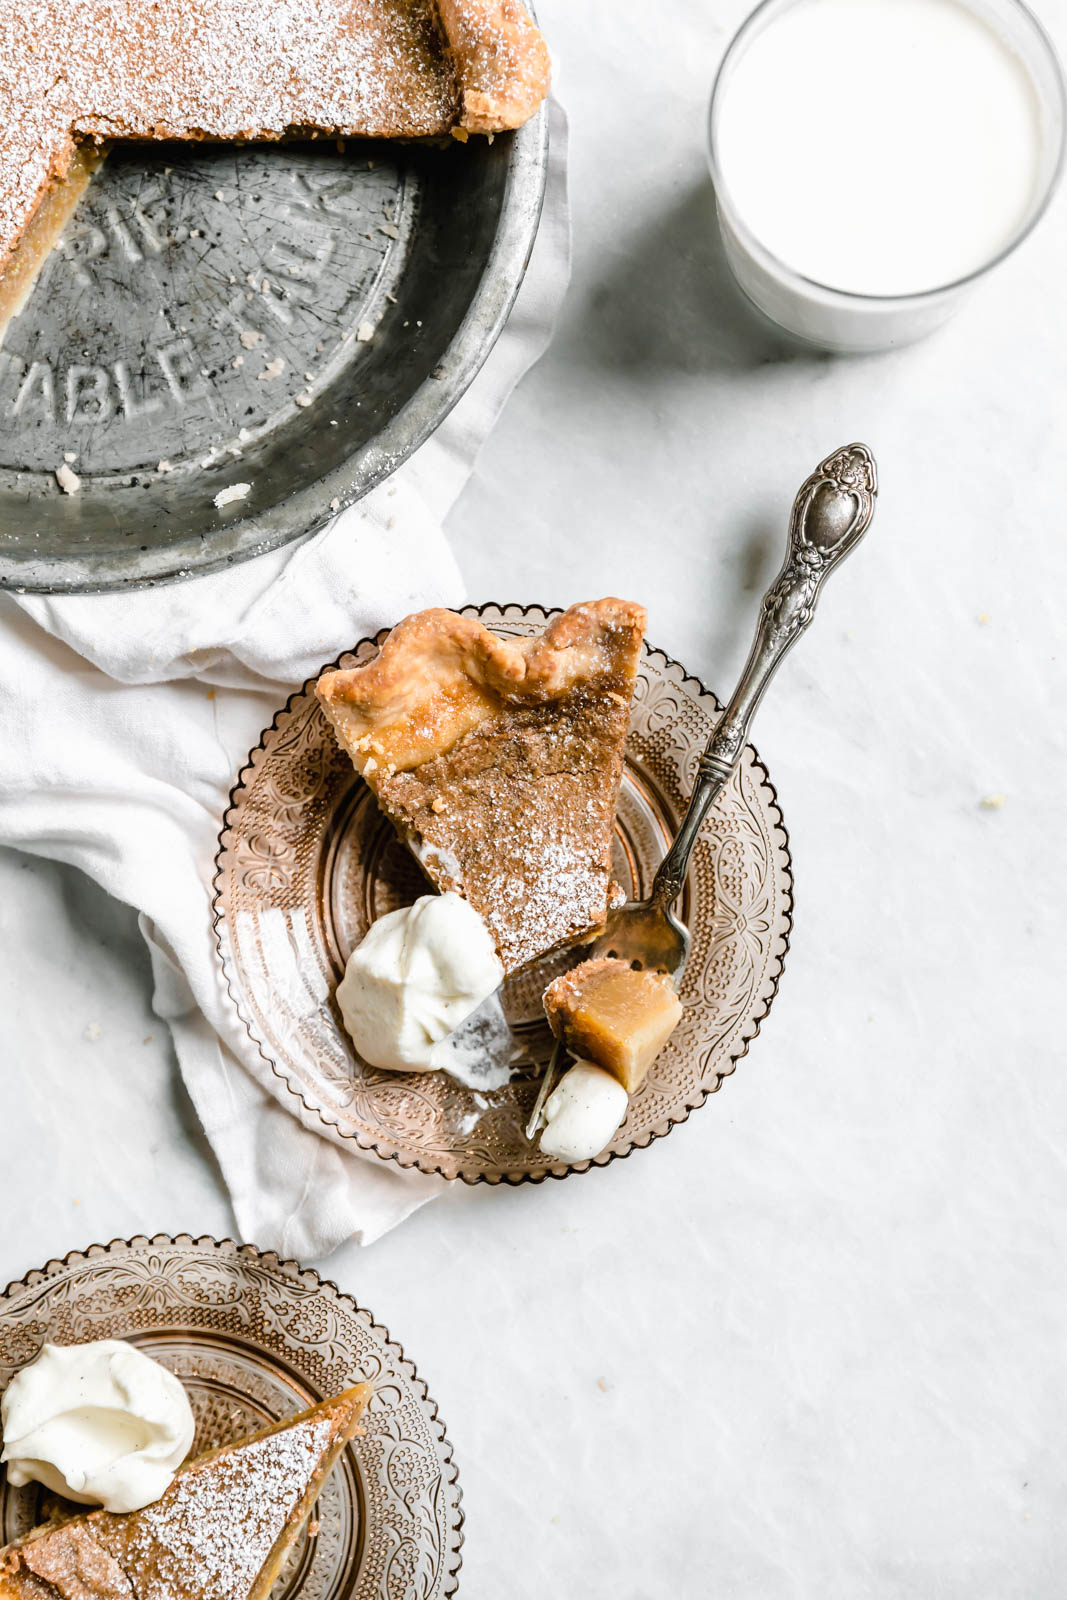 This is not your grandmother's chess pie. A luxurious combination of brown butter, maple, and custard make this Maple Chess Pie one for the books.